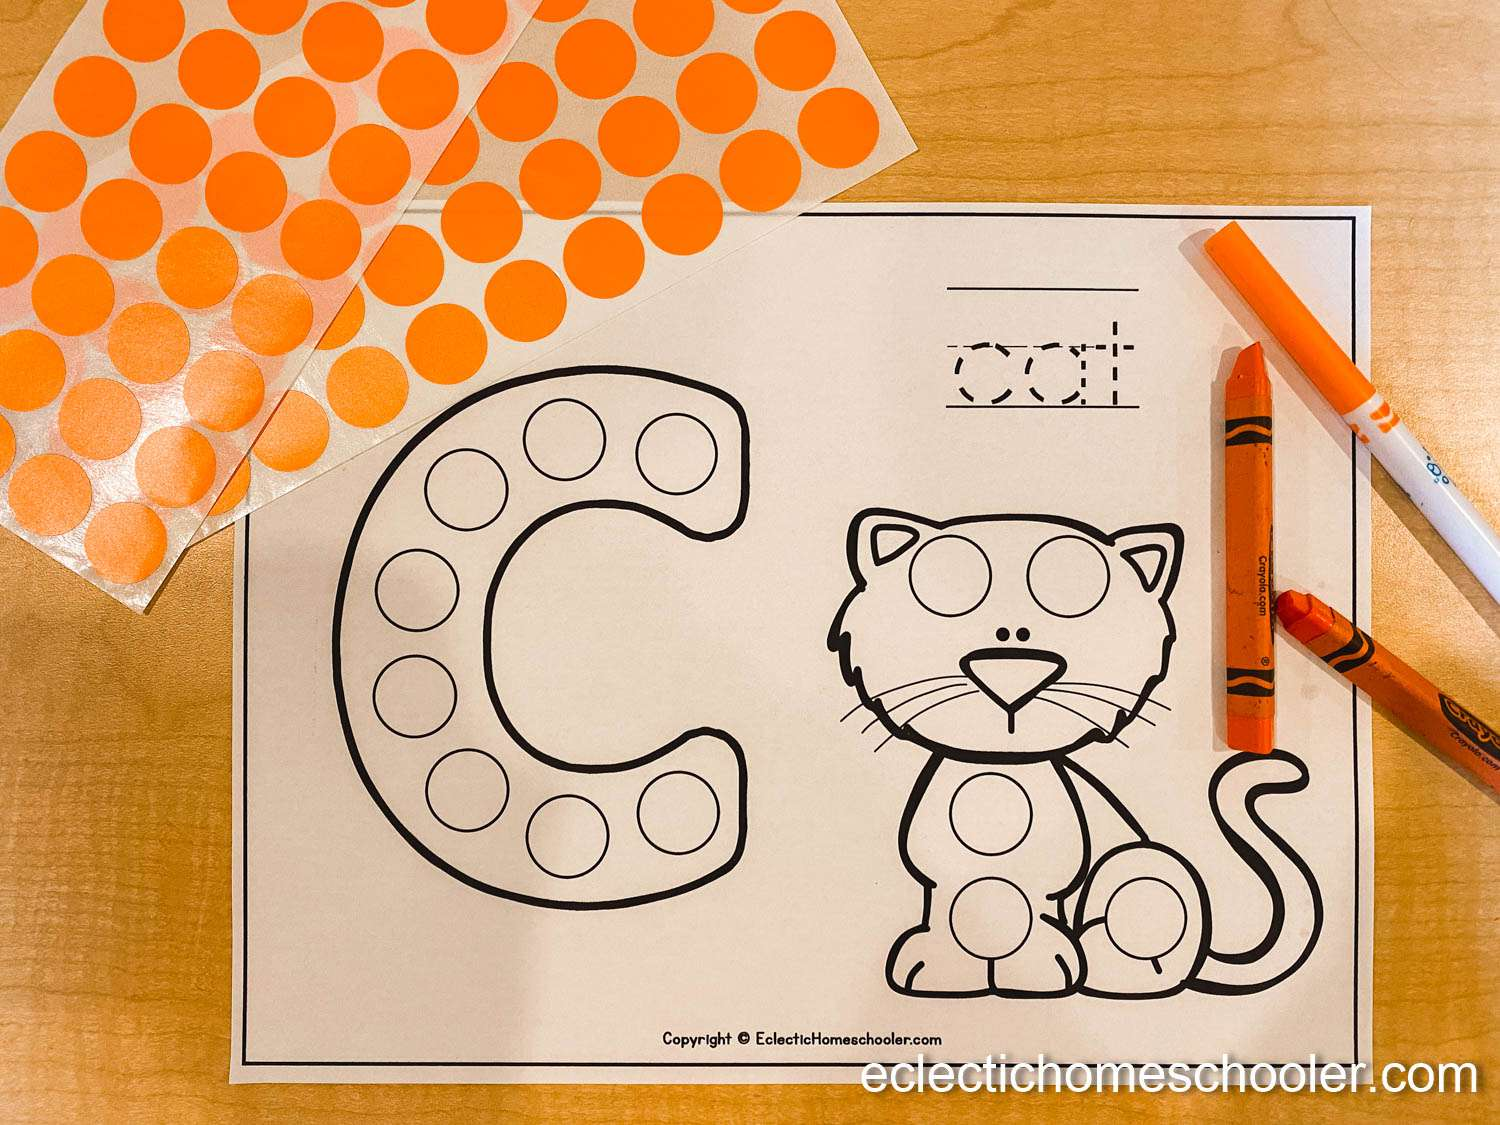 Letter C Free Printable Do a Dot Pages With Dot Stickers